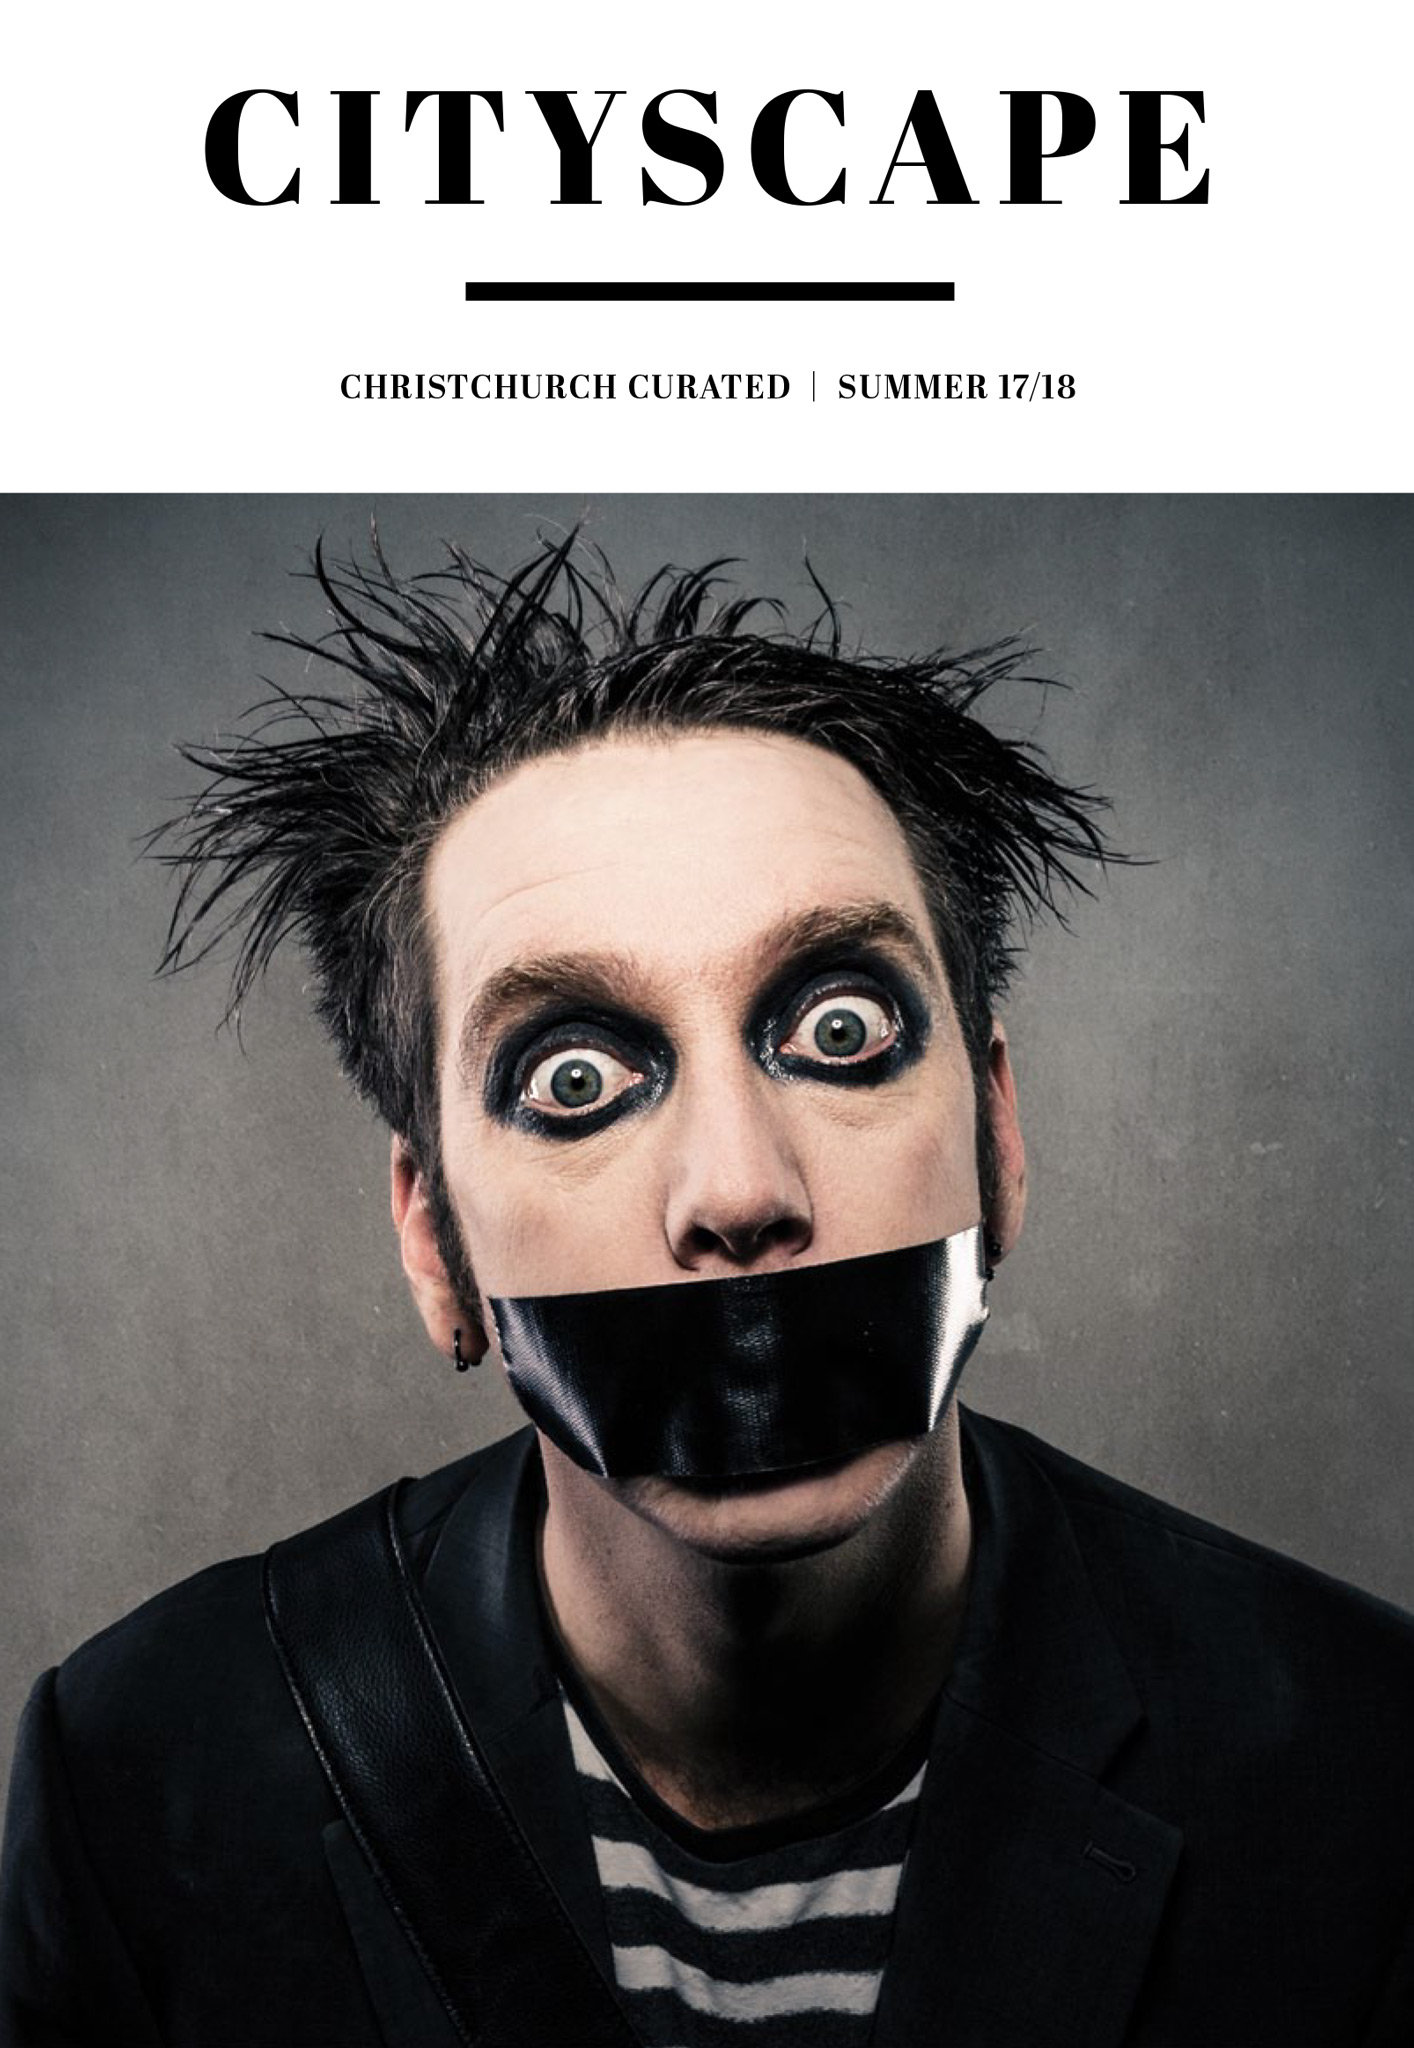 Cityscape Cover image - Tape Face.jpg